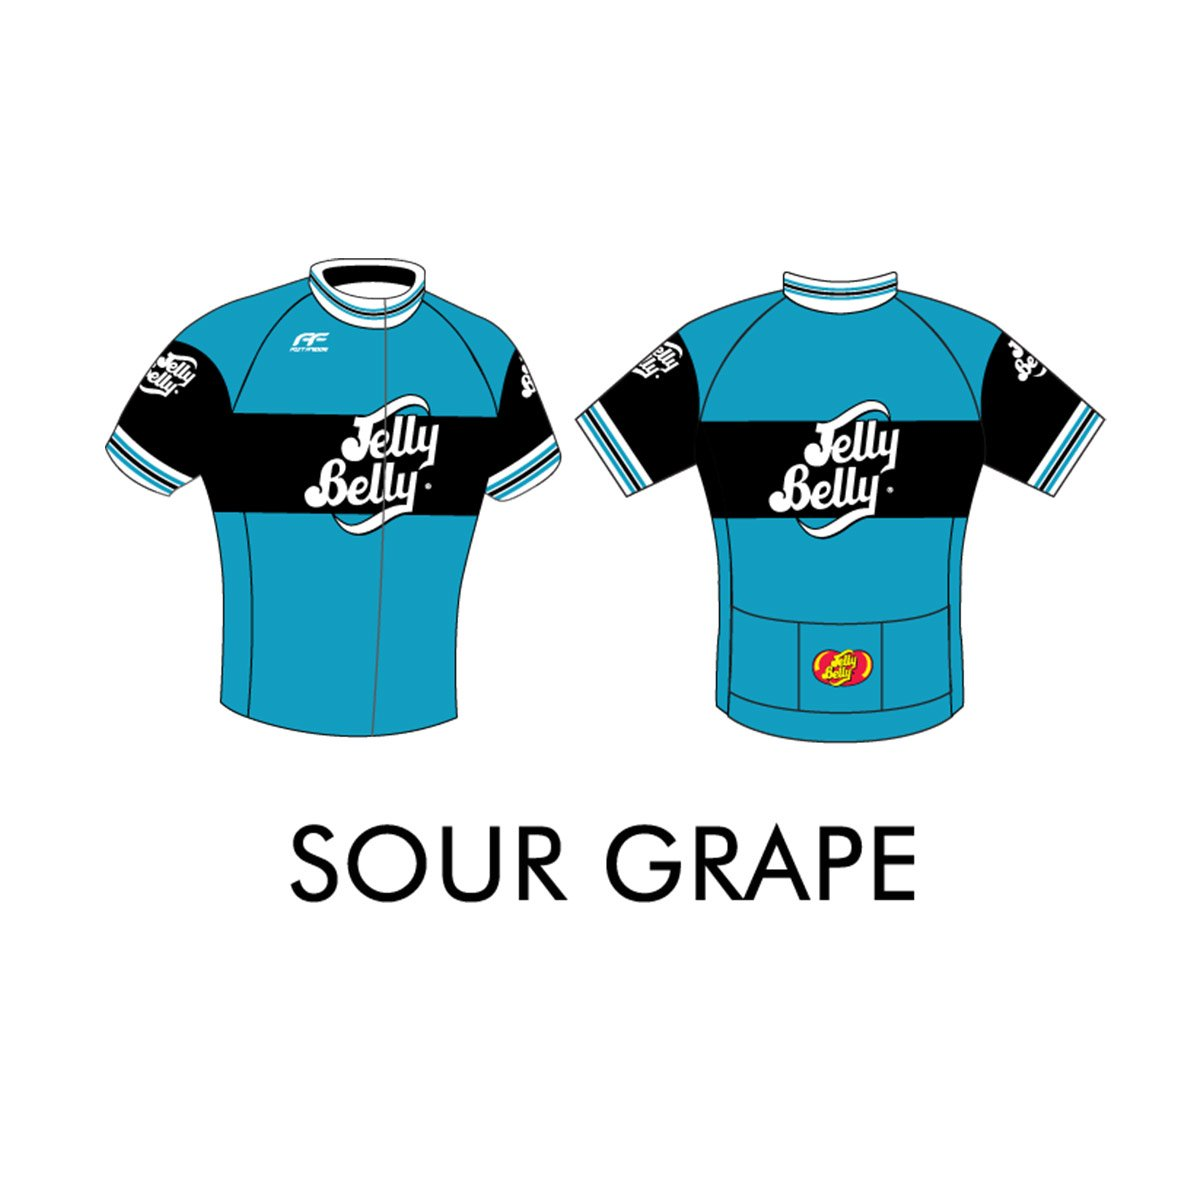 a43ee55f3 Jelly Belly Sour Grape Retro Cycling Jersey - Adult - Large  Amazon.com   Grocery   Gourmet Food